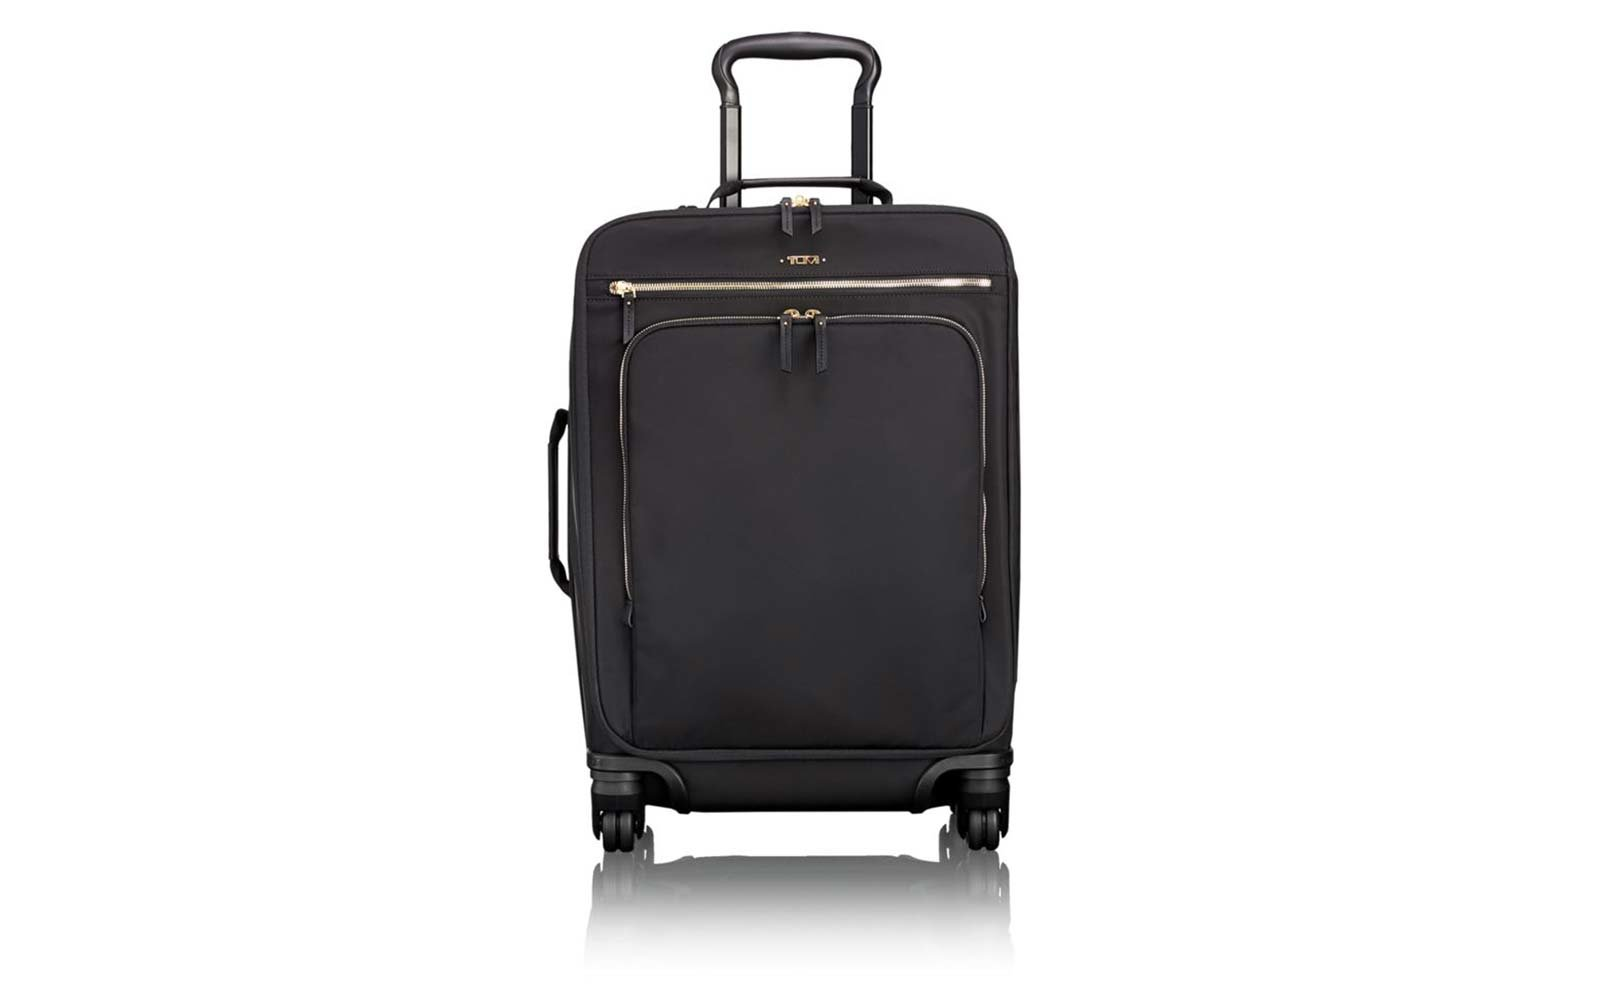 tumi travel luggage bag